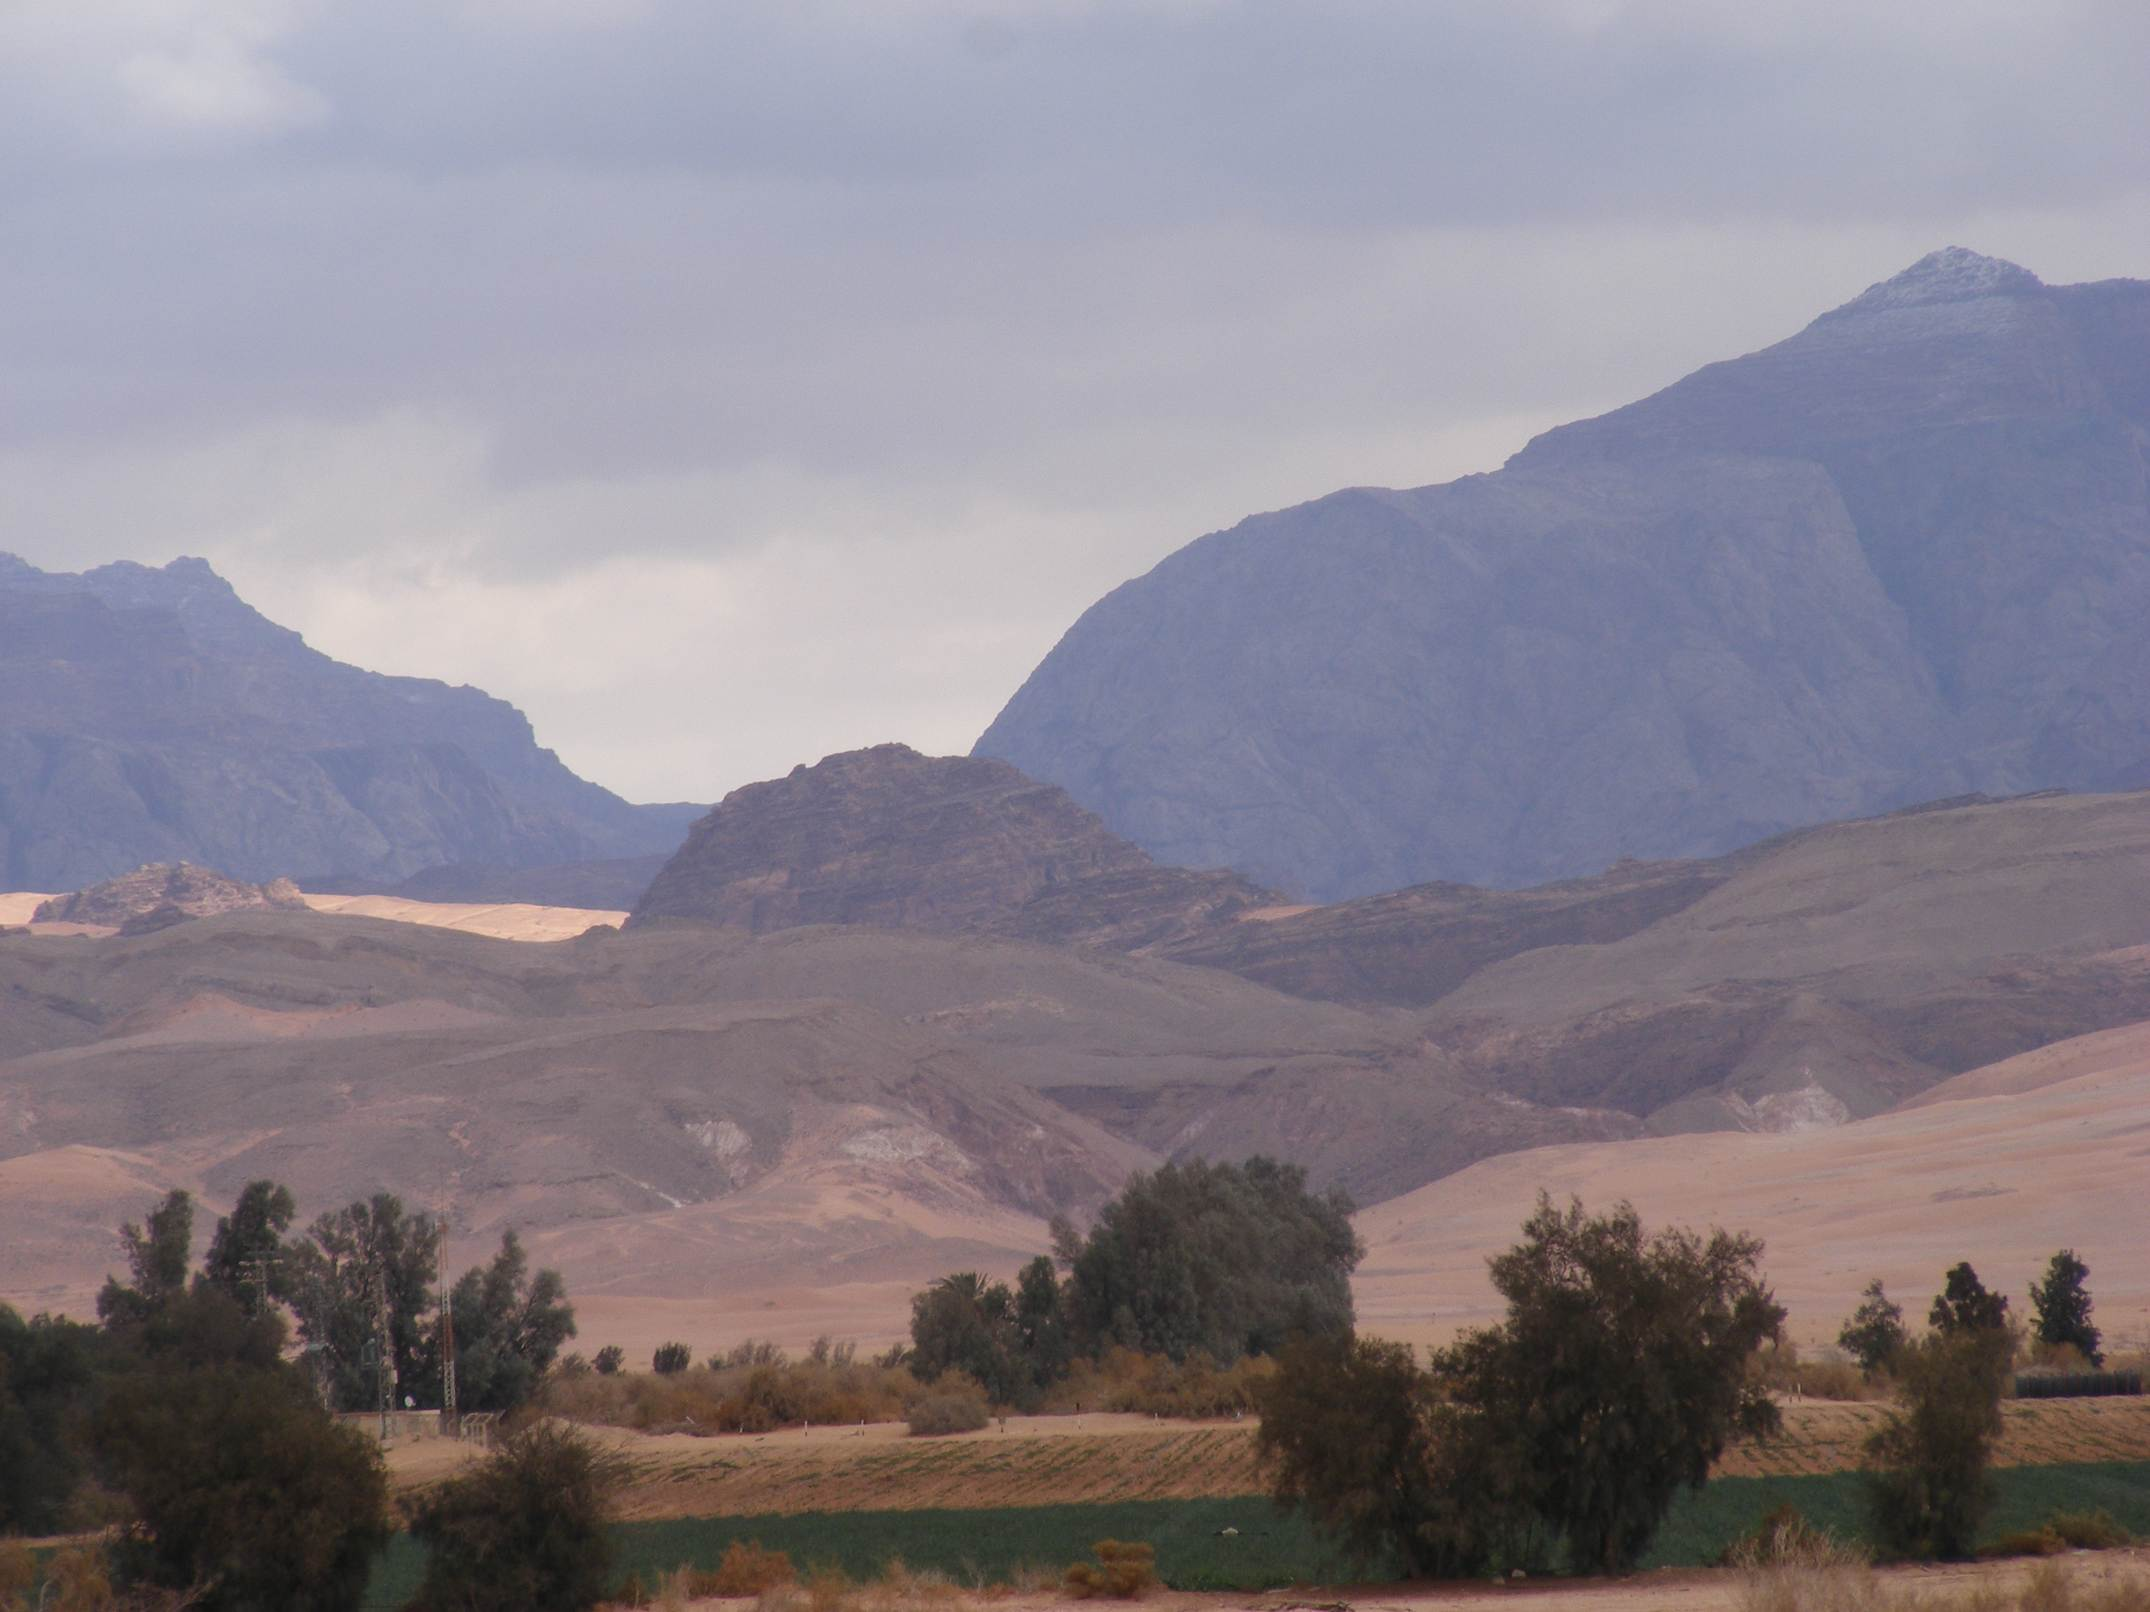 Light and shade in Arava valley with trees